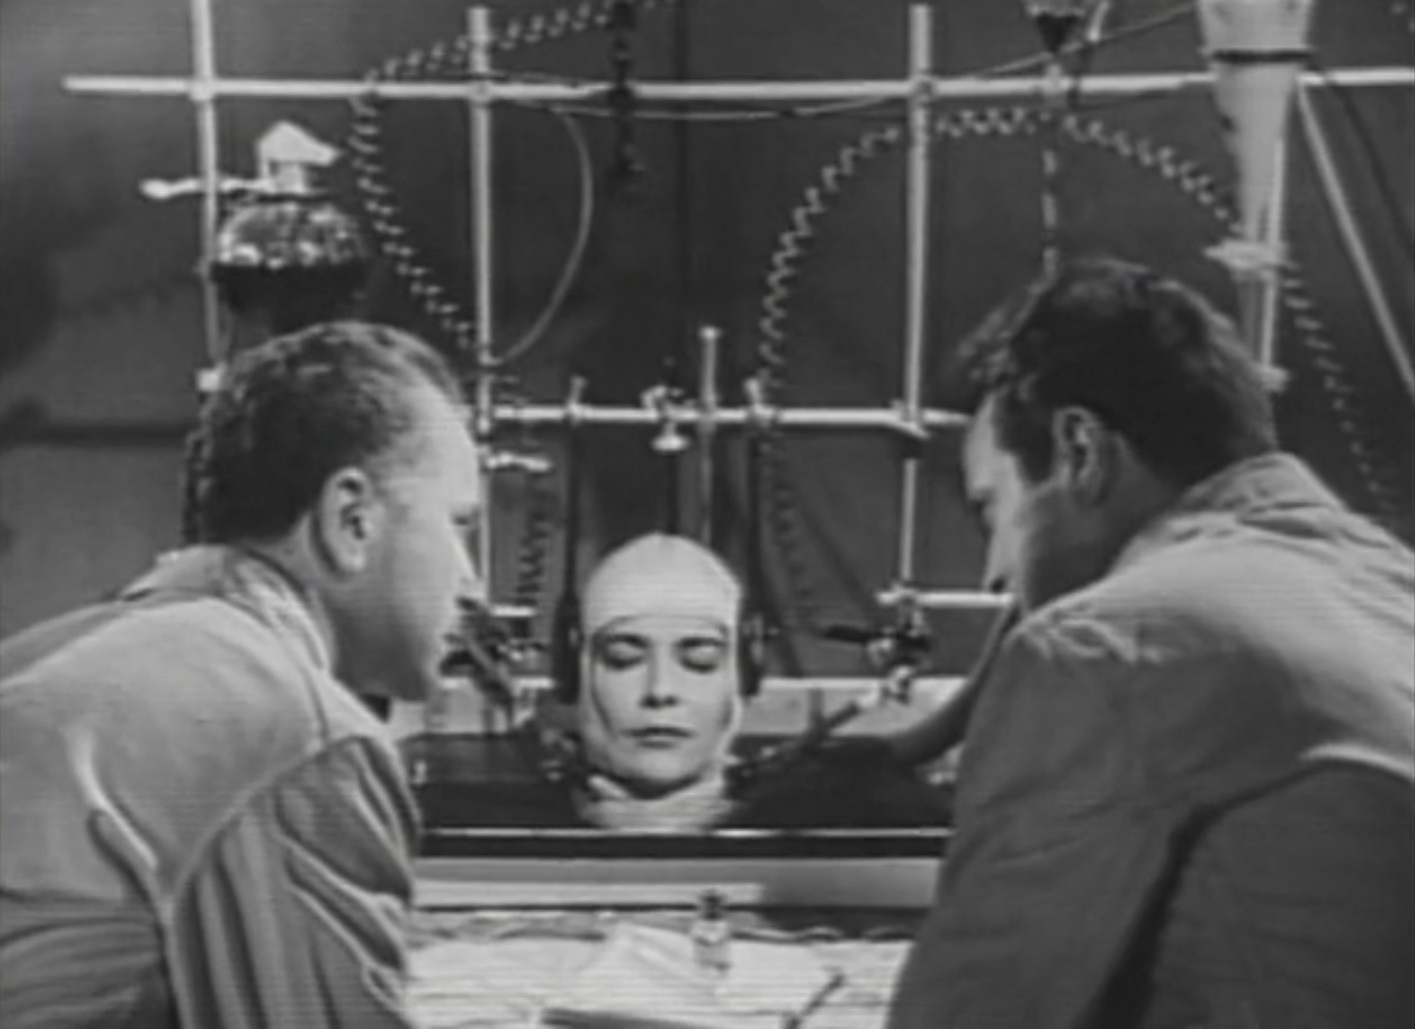 HORROR 101 with Dr. AC: THE BRAIN THAT WOULDNT DIE (1962